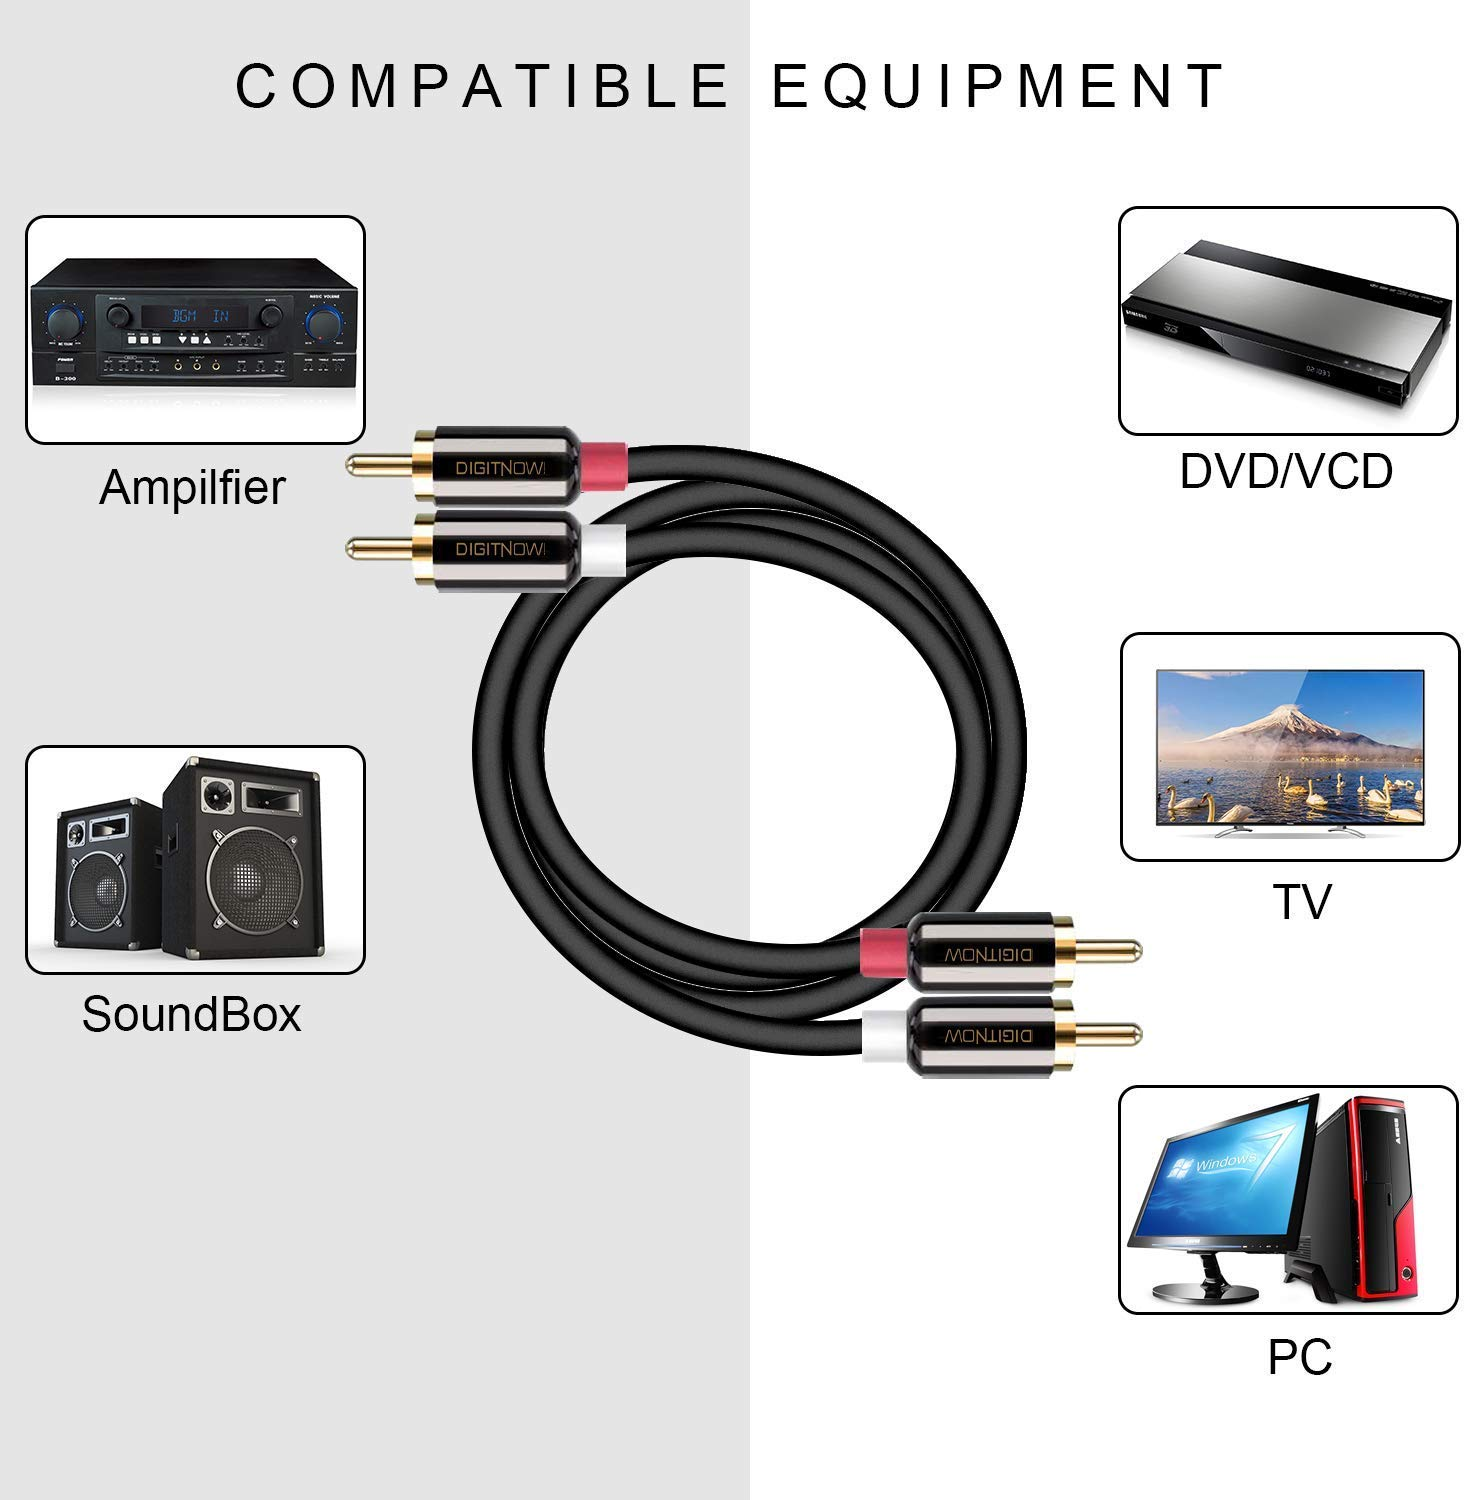 6.6Ft TV 2RCA Male to 2 RCA Male Stereo Audio Cable Gold Plated for Home Theater Hi-Fi Systems Gaming Consoles